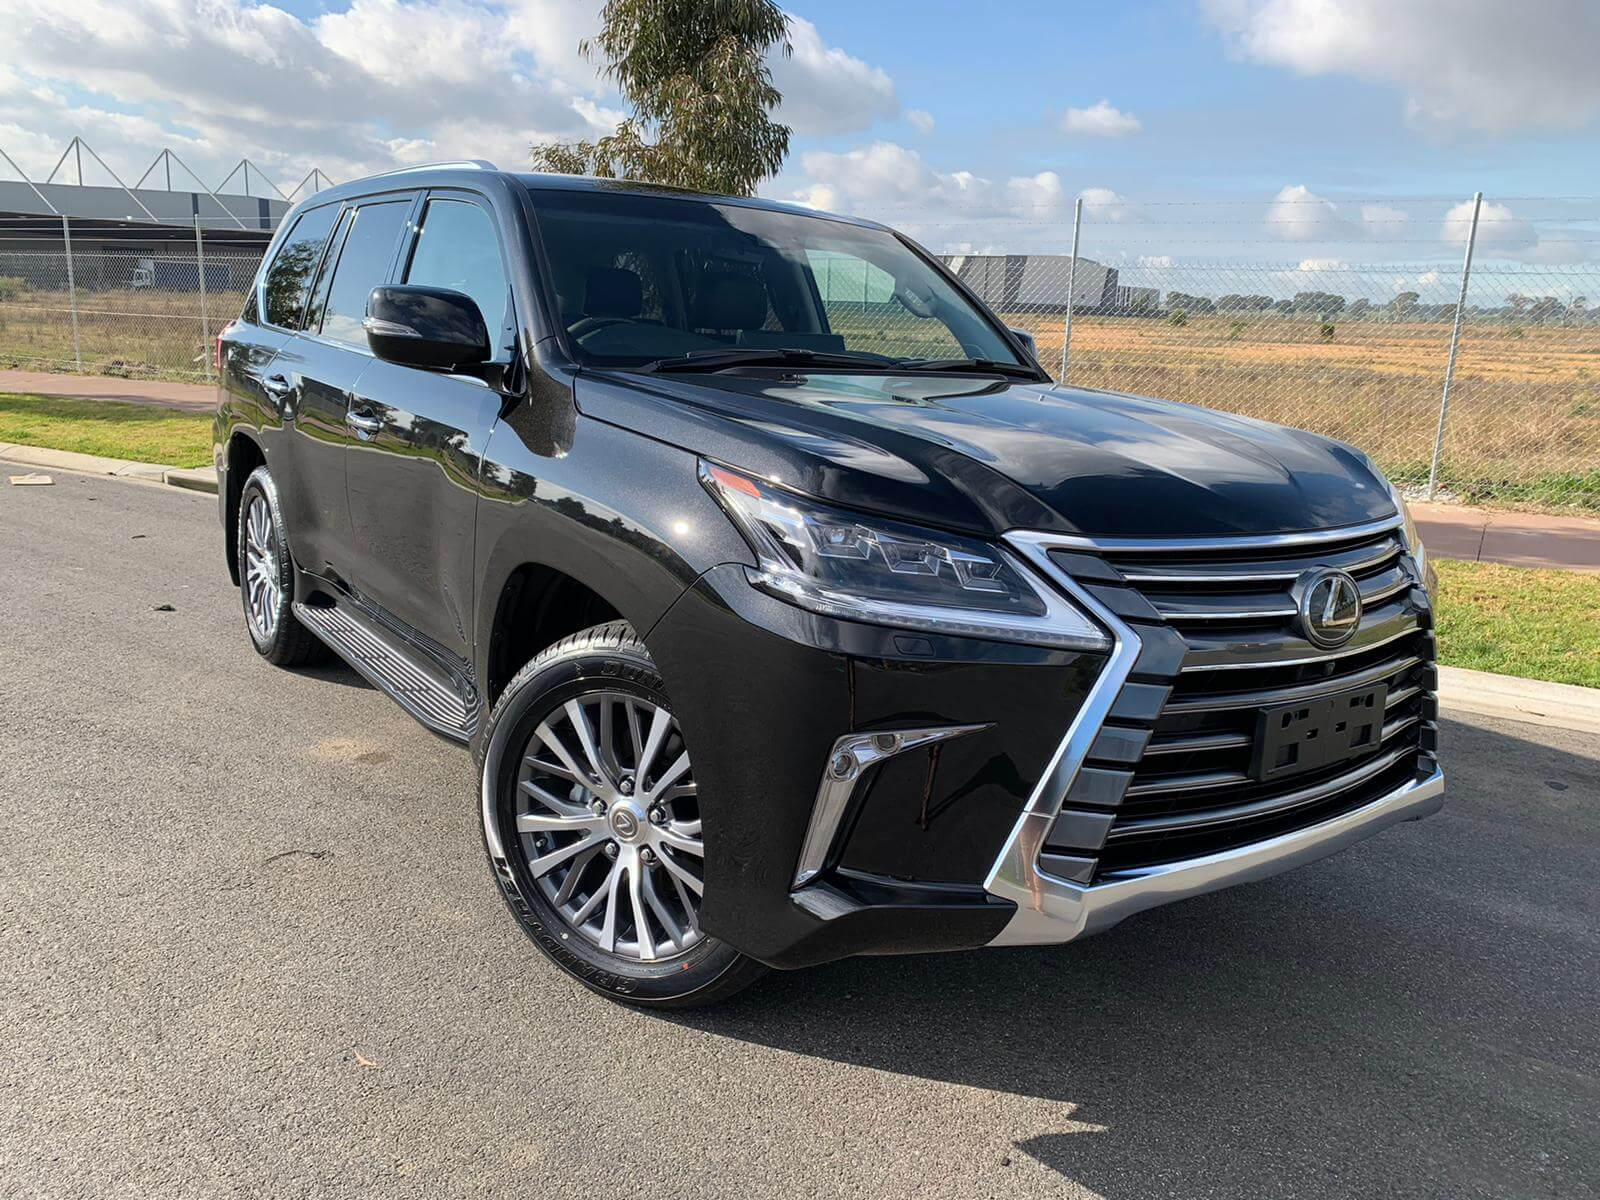 Brand New 2020 Lexus Lx450d Black Color Black Leather V8 Turbo Diesel Suv A T Gsat Jp